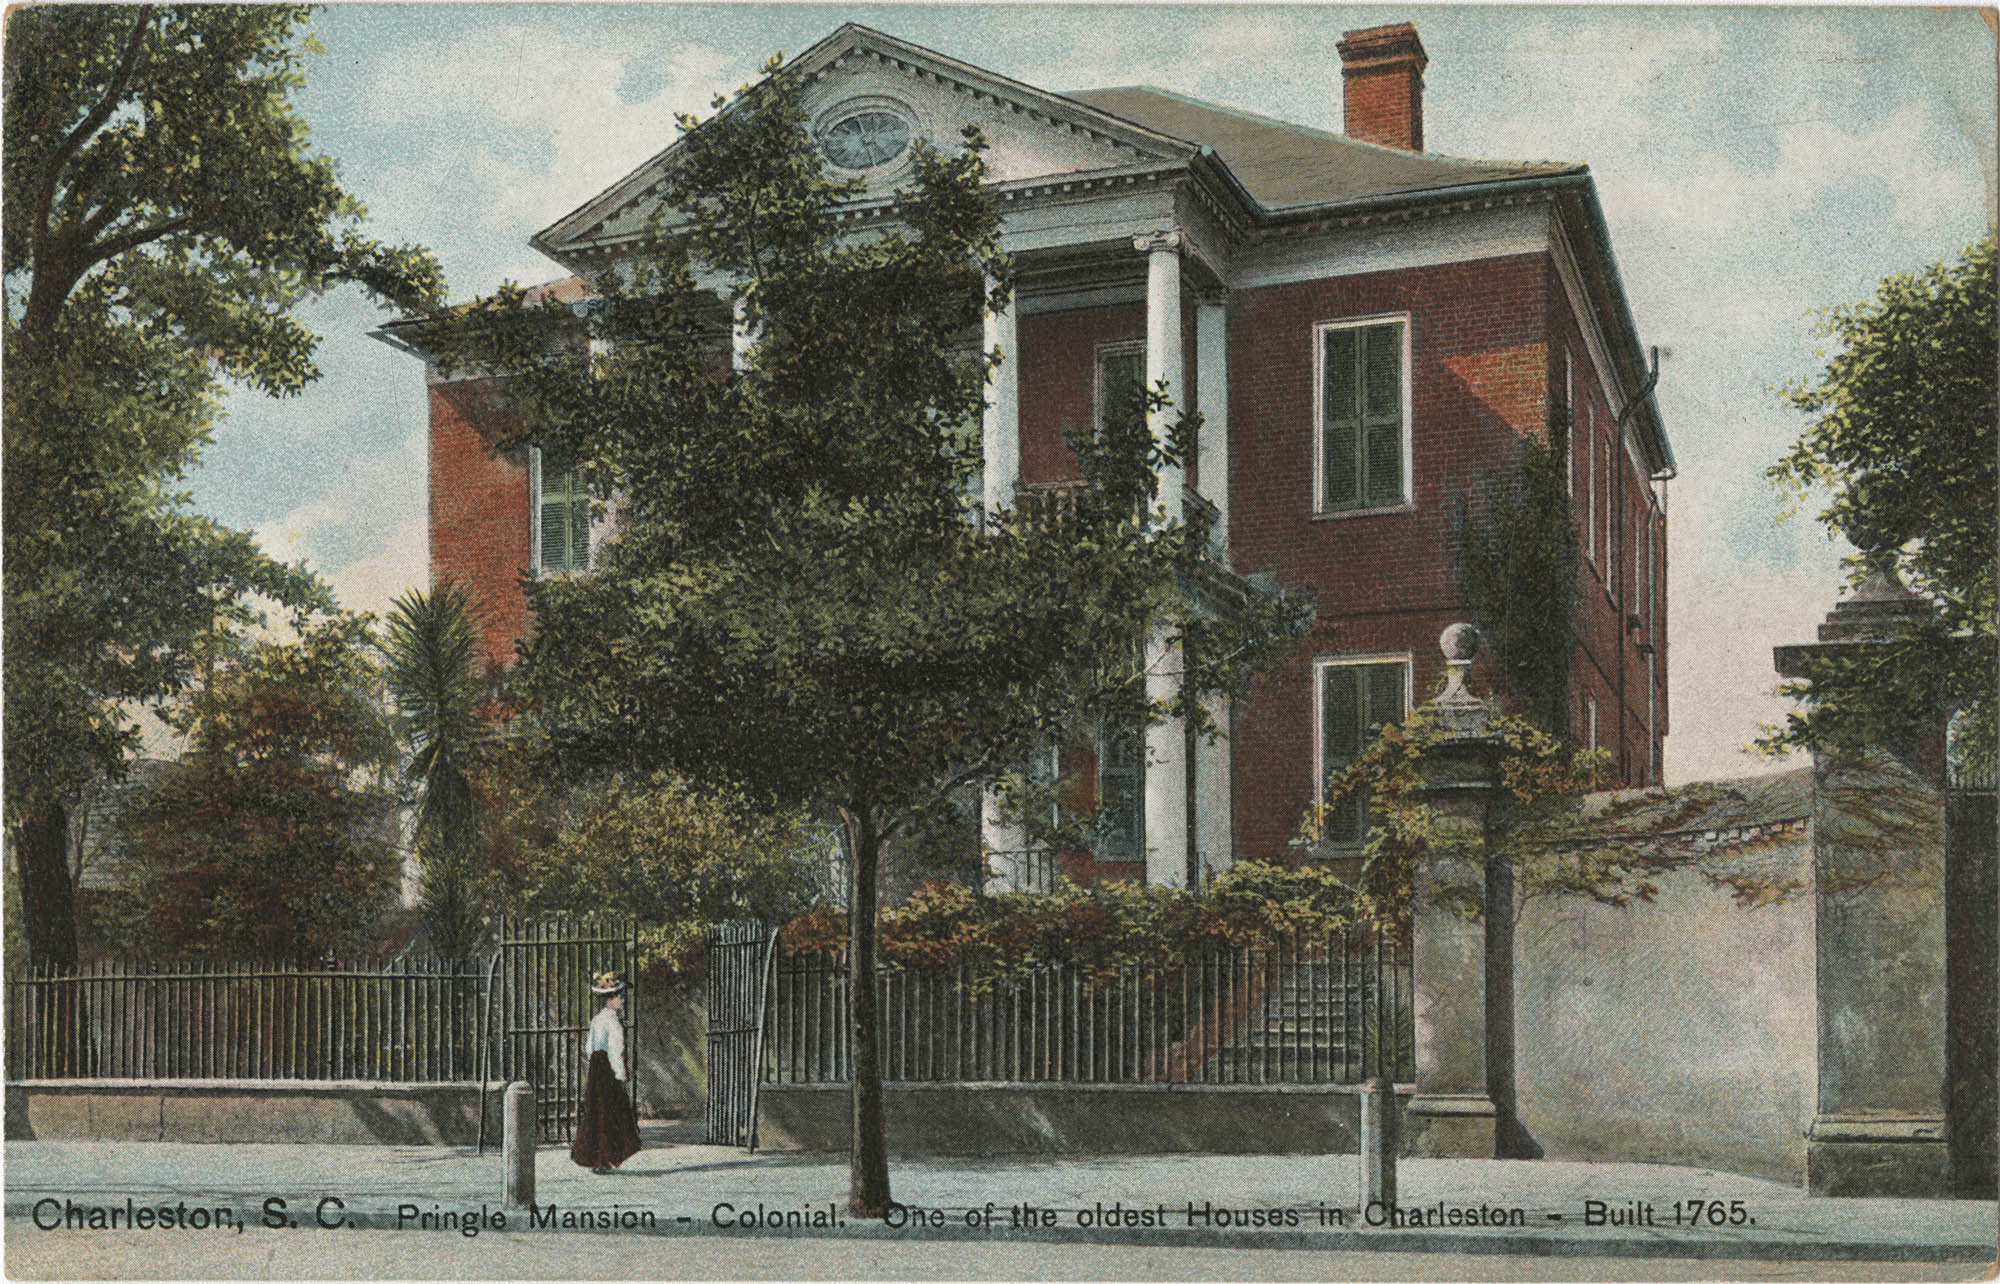 Charleston, S.C. Pringle Mansion-Colonial. One of the oldest Houses in Charlston-Built 1765